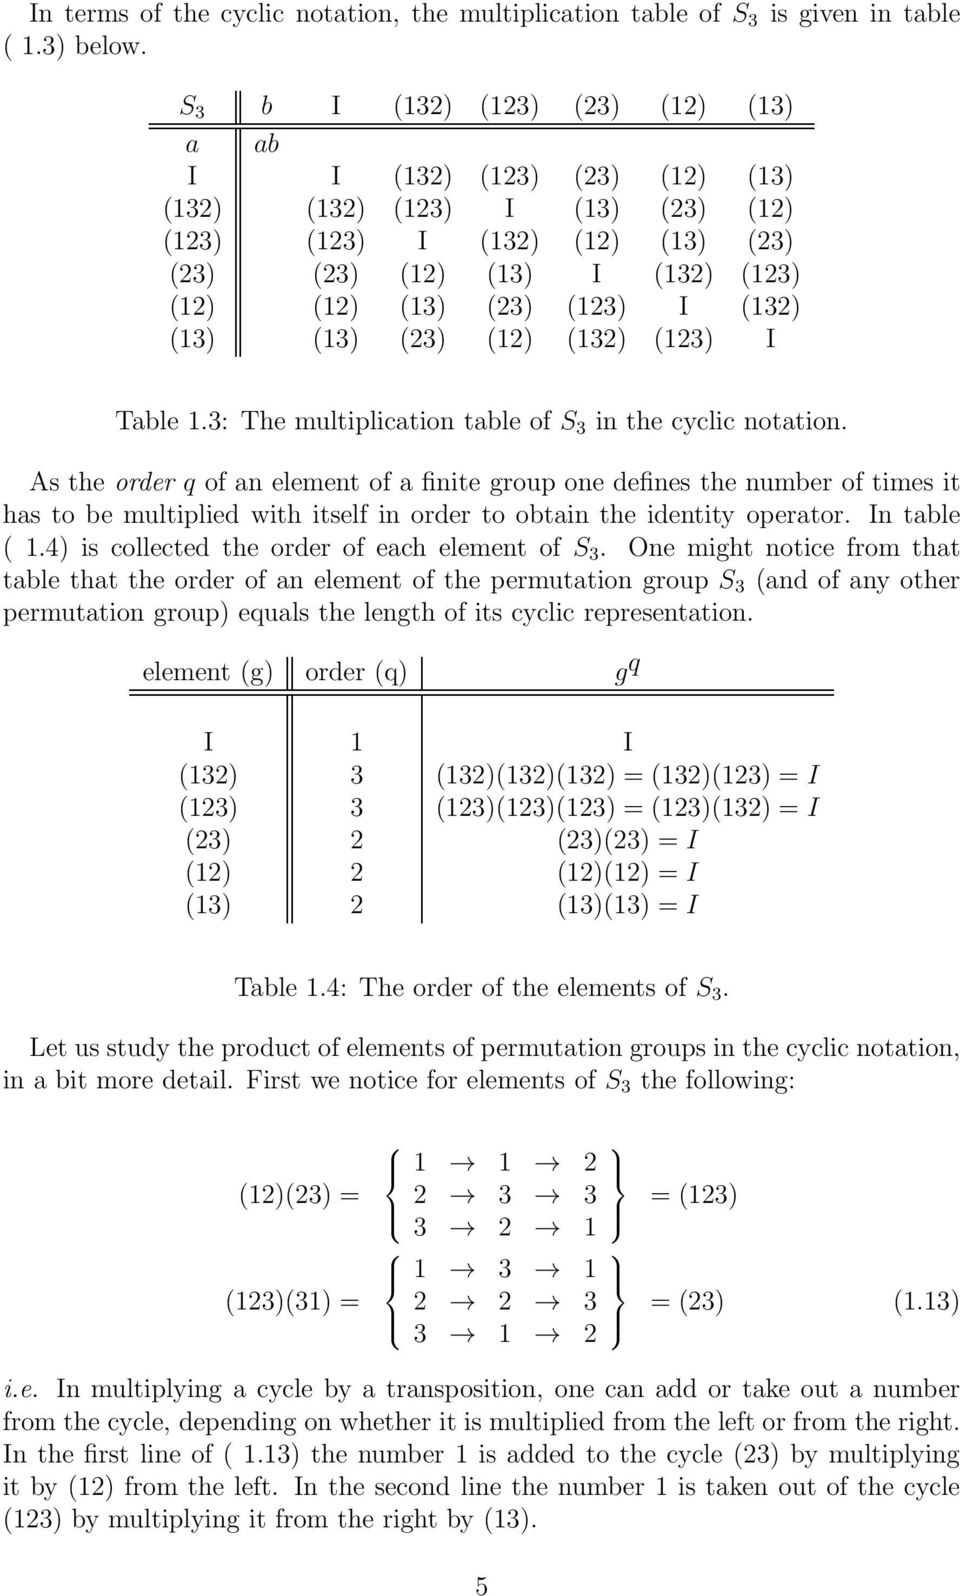 : The multiplication table of S in the cyclic notation.